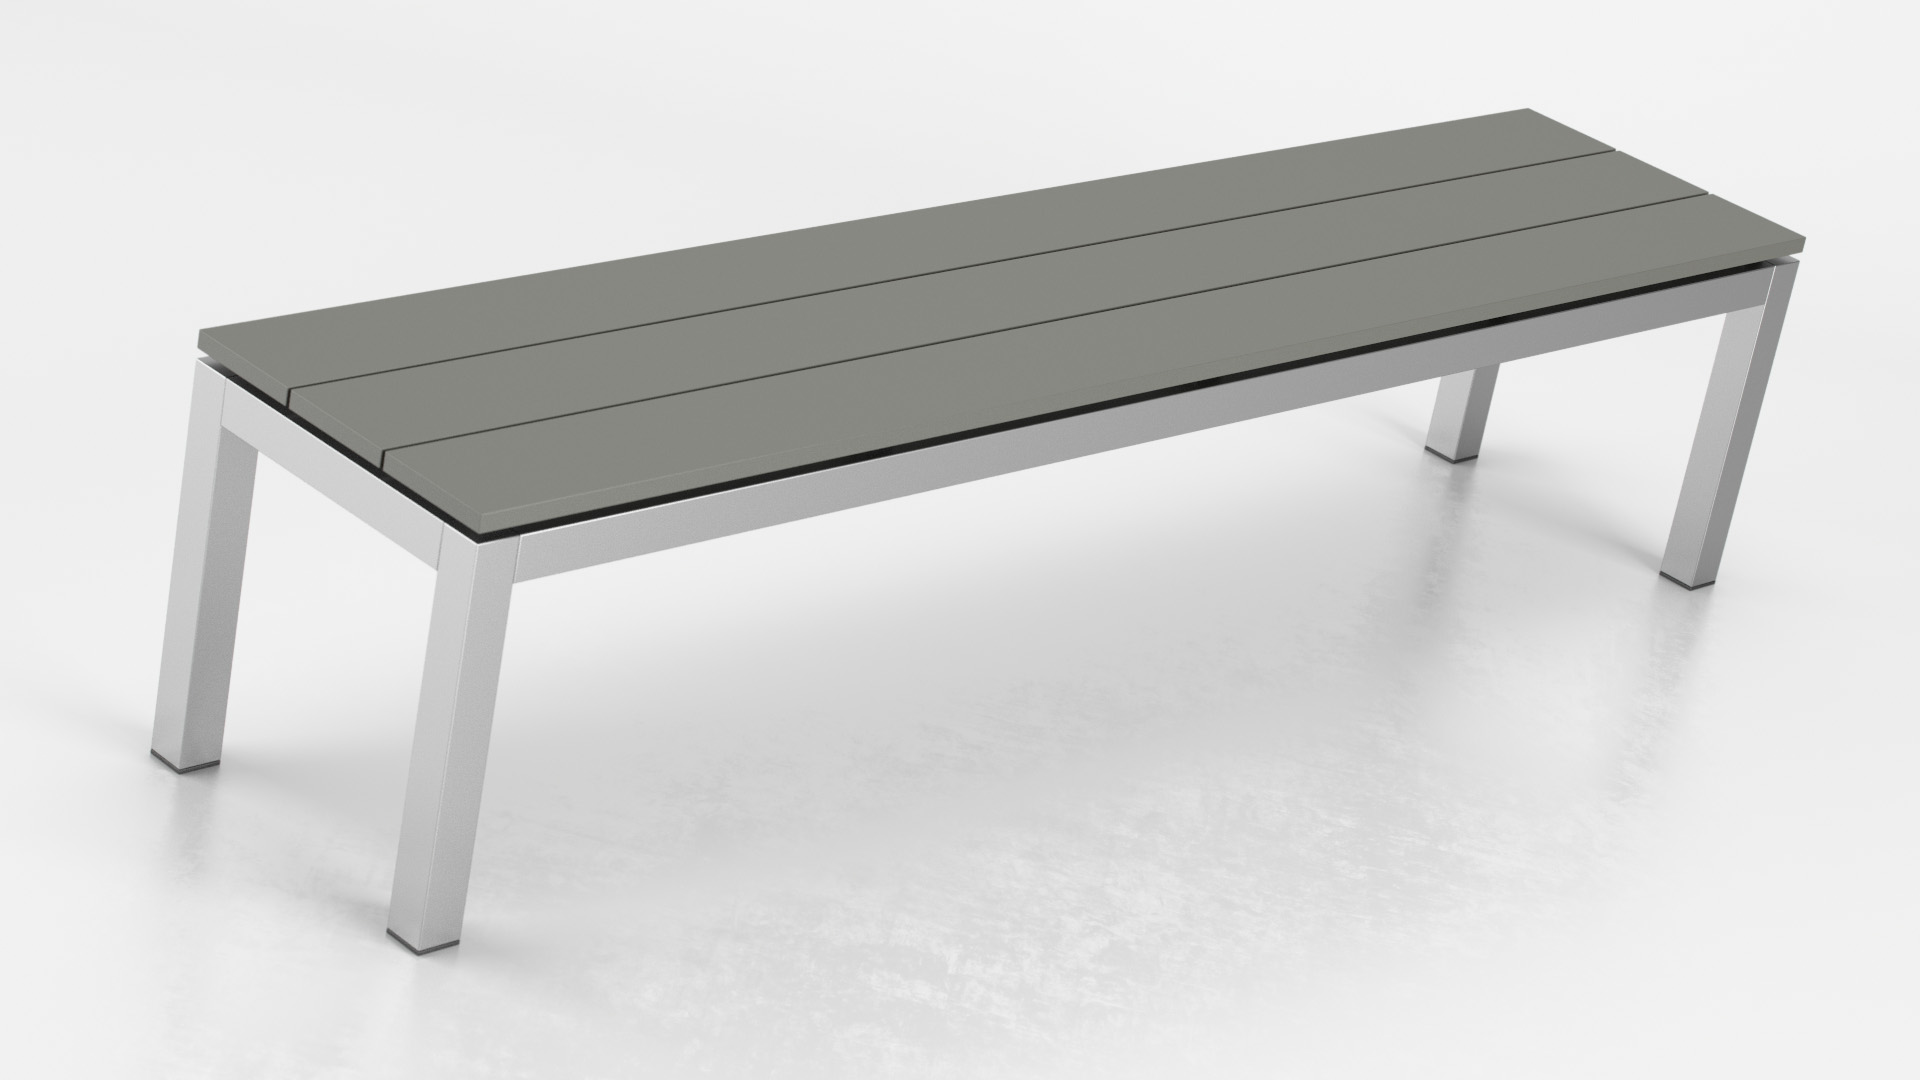 Tribu_NatalTechno_Bench_WhiteSet_01_0005